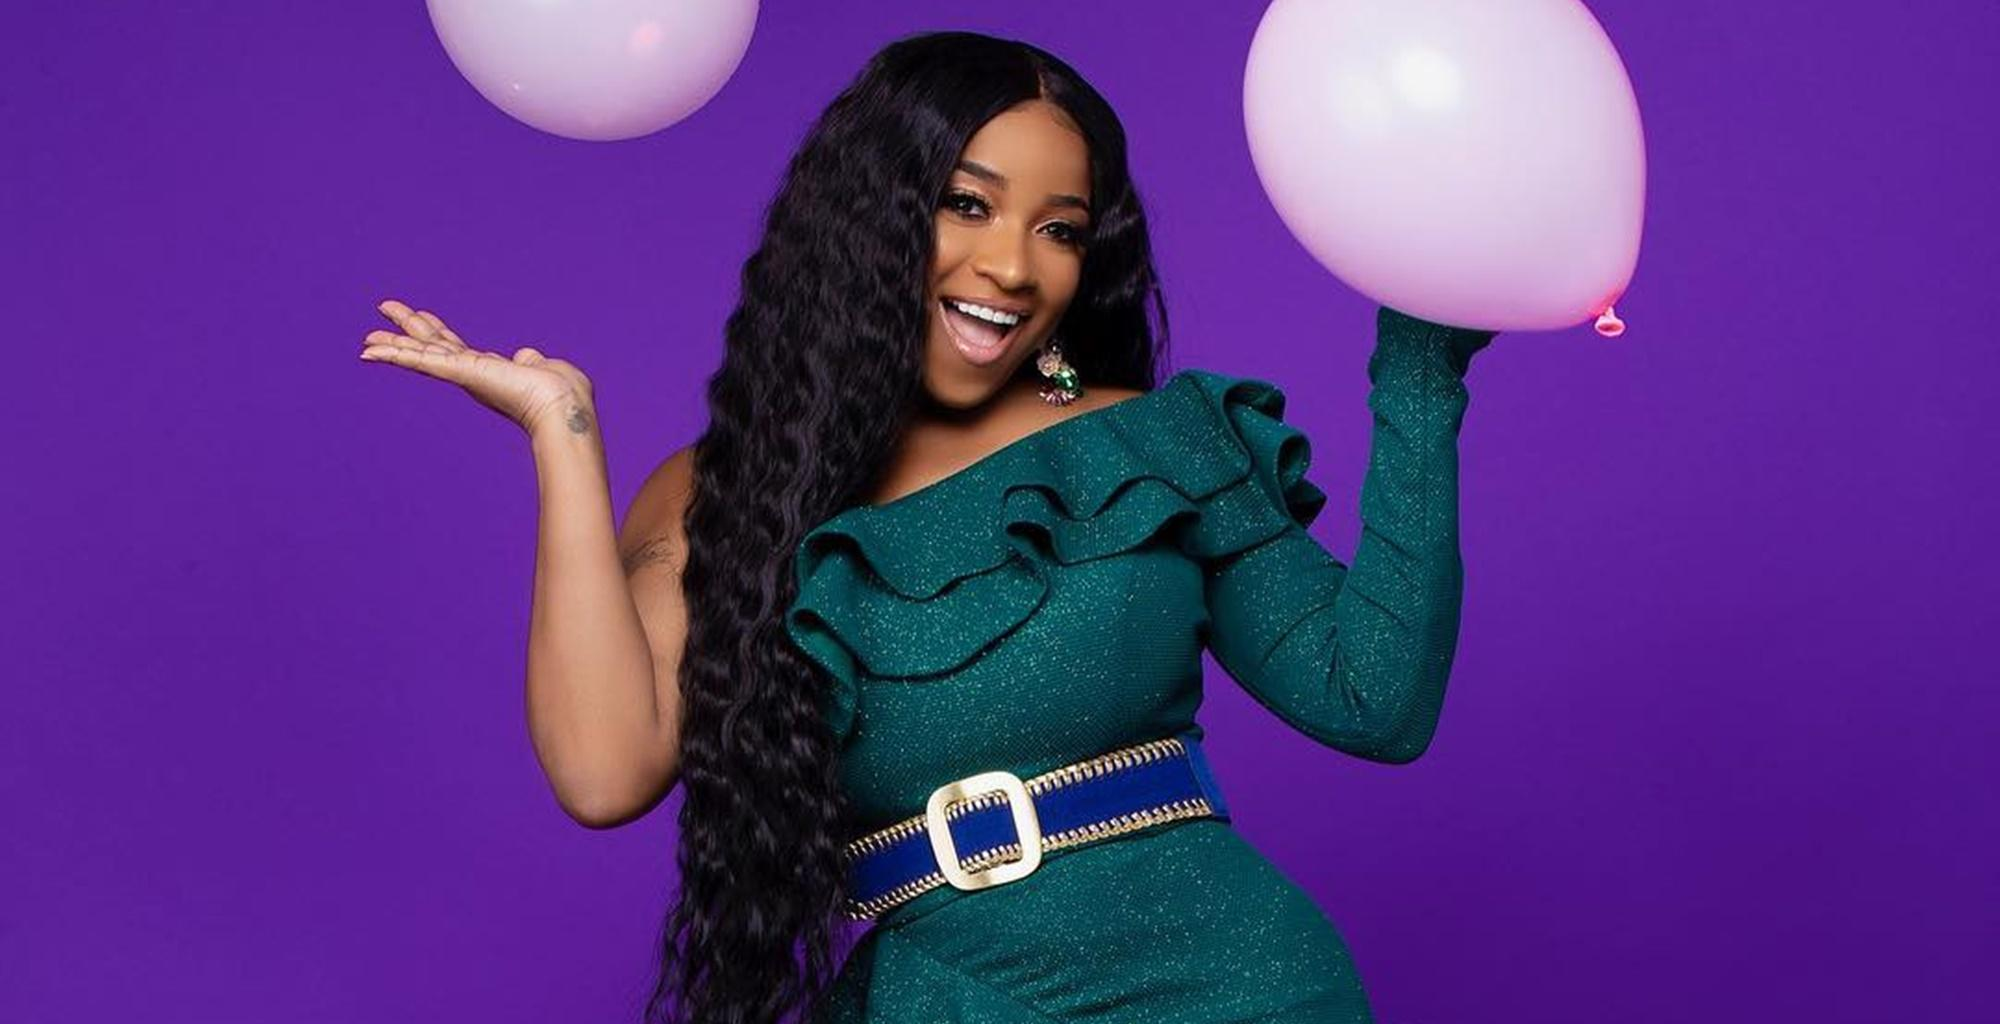 Toya Wright's Family Came In Town To Visit Her For Christmas - See Her Gorgeous Holiday Photo